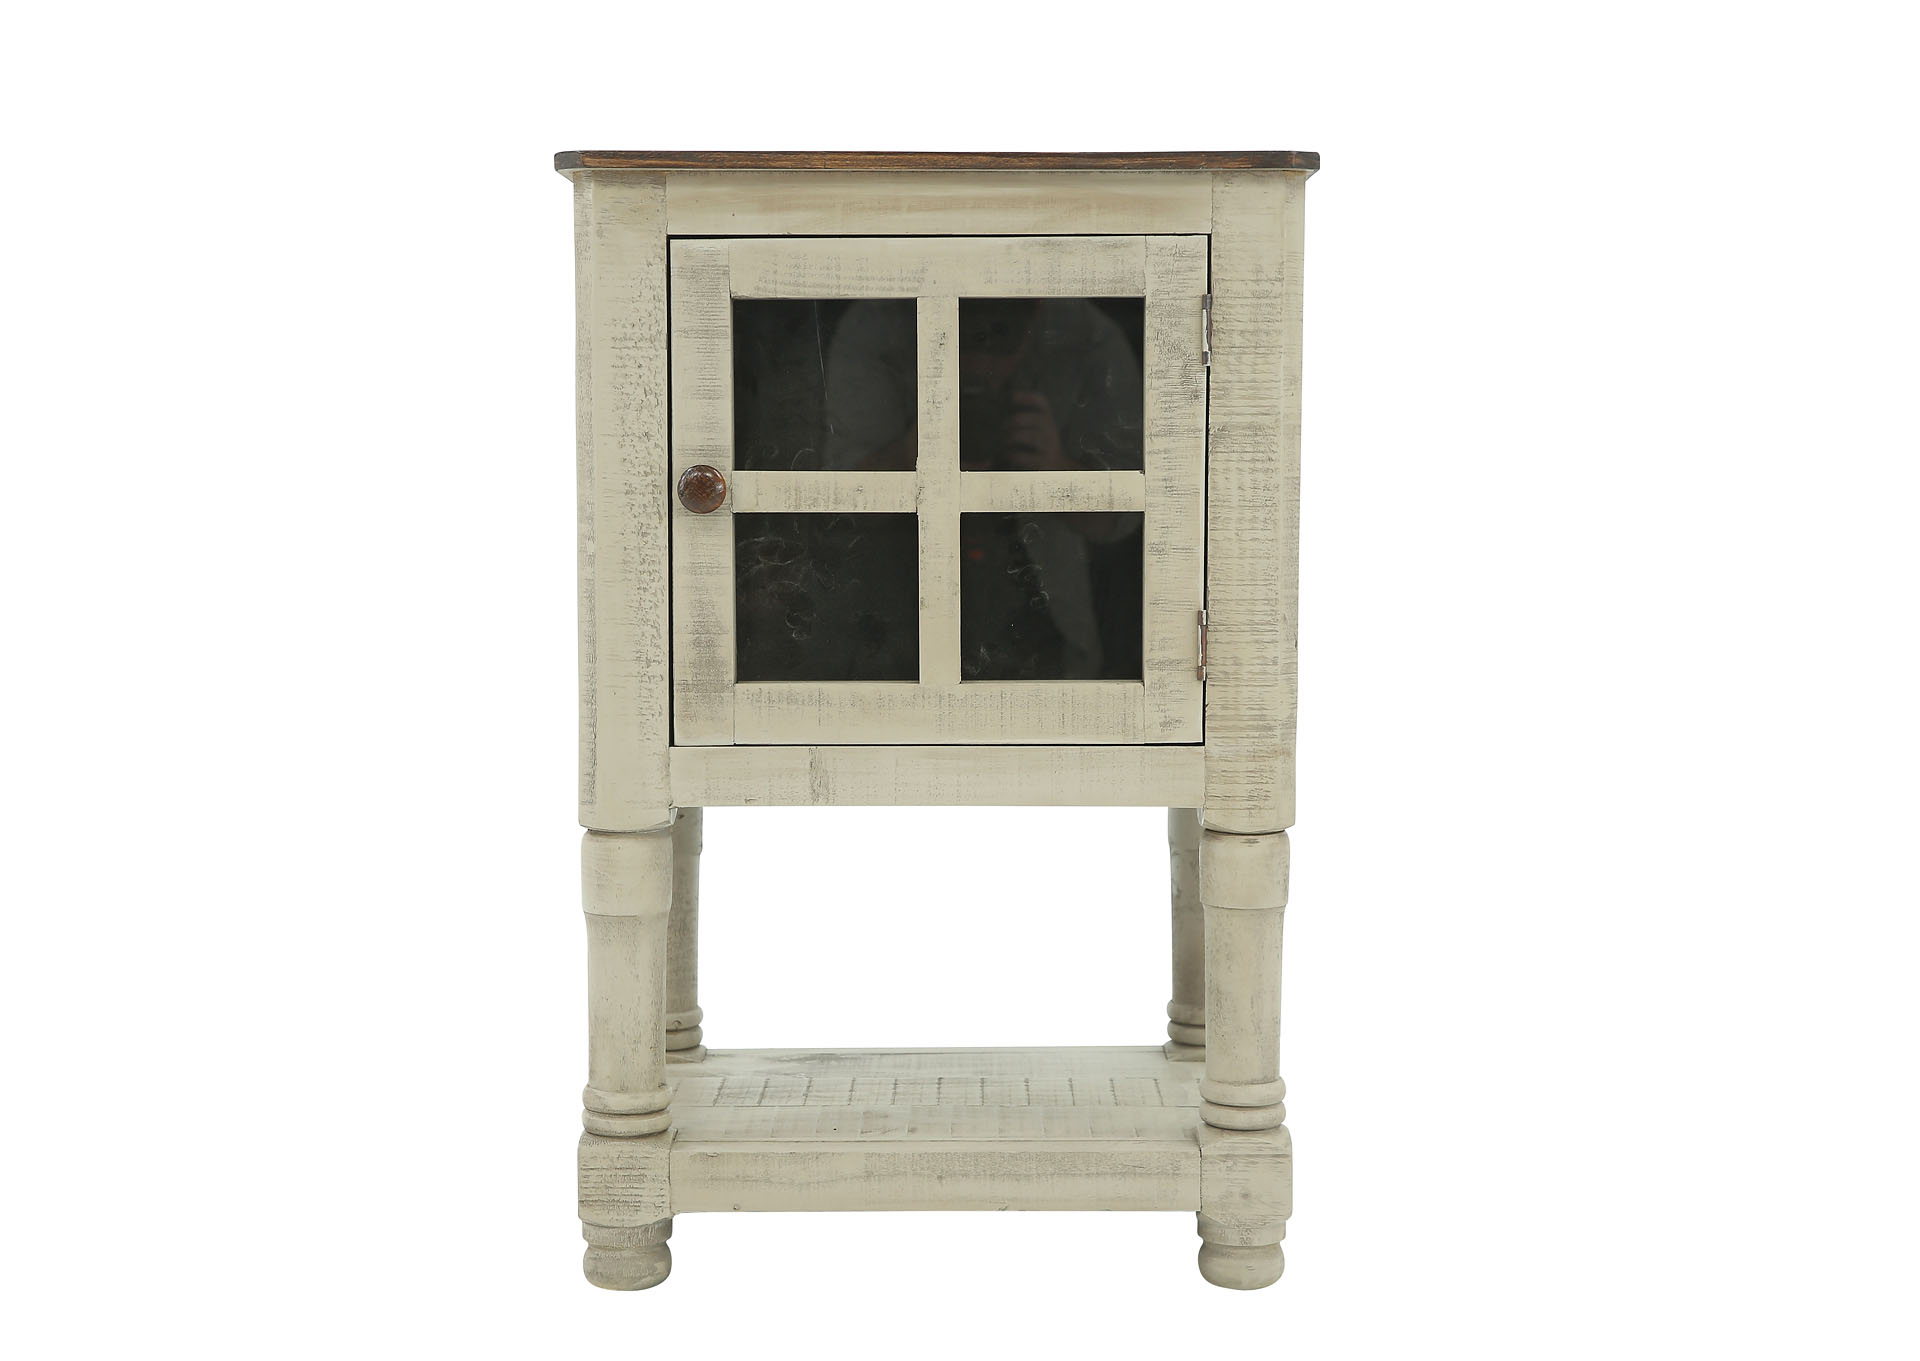 AUGUSTA GRAY AND TOBACCO ACCENT TABLE,RUSTIC IMPORTS